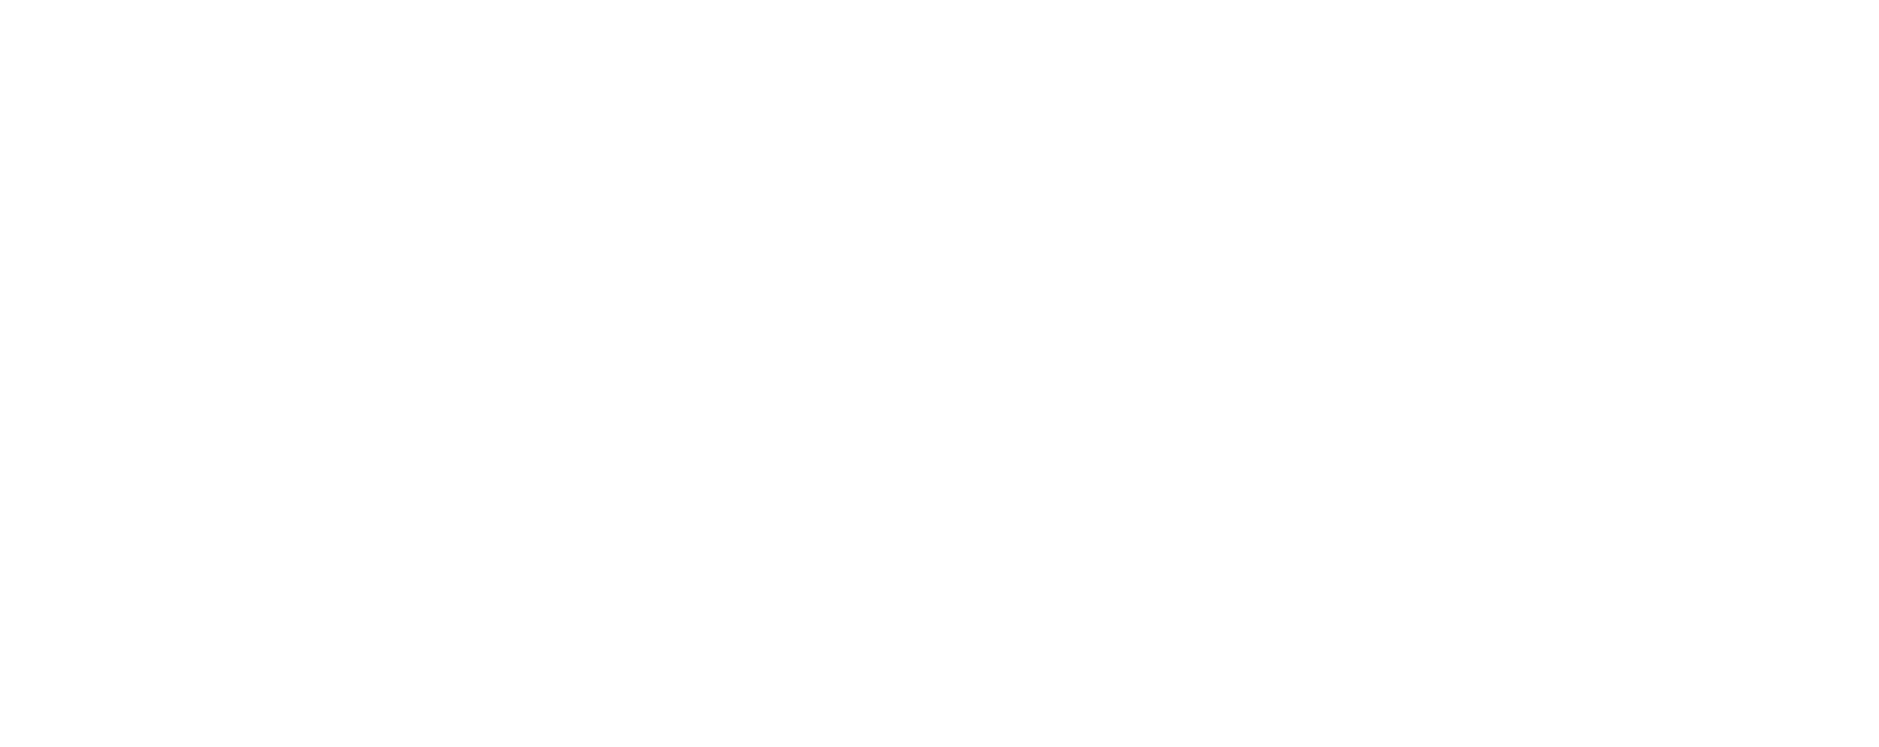 Moydow Holdings Limited